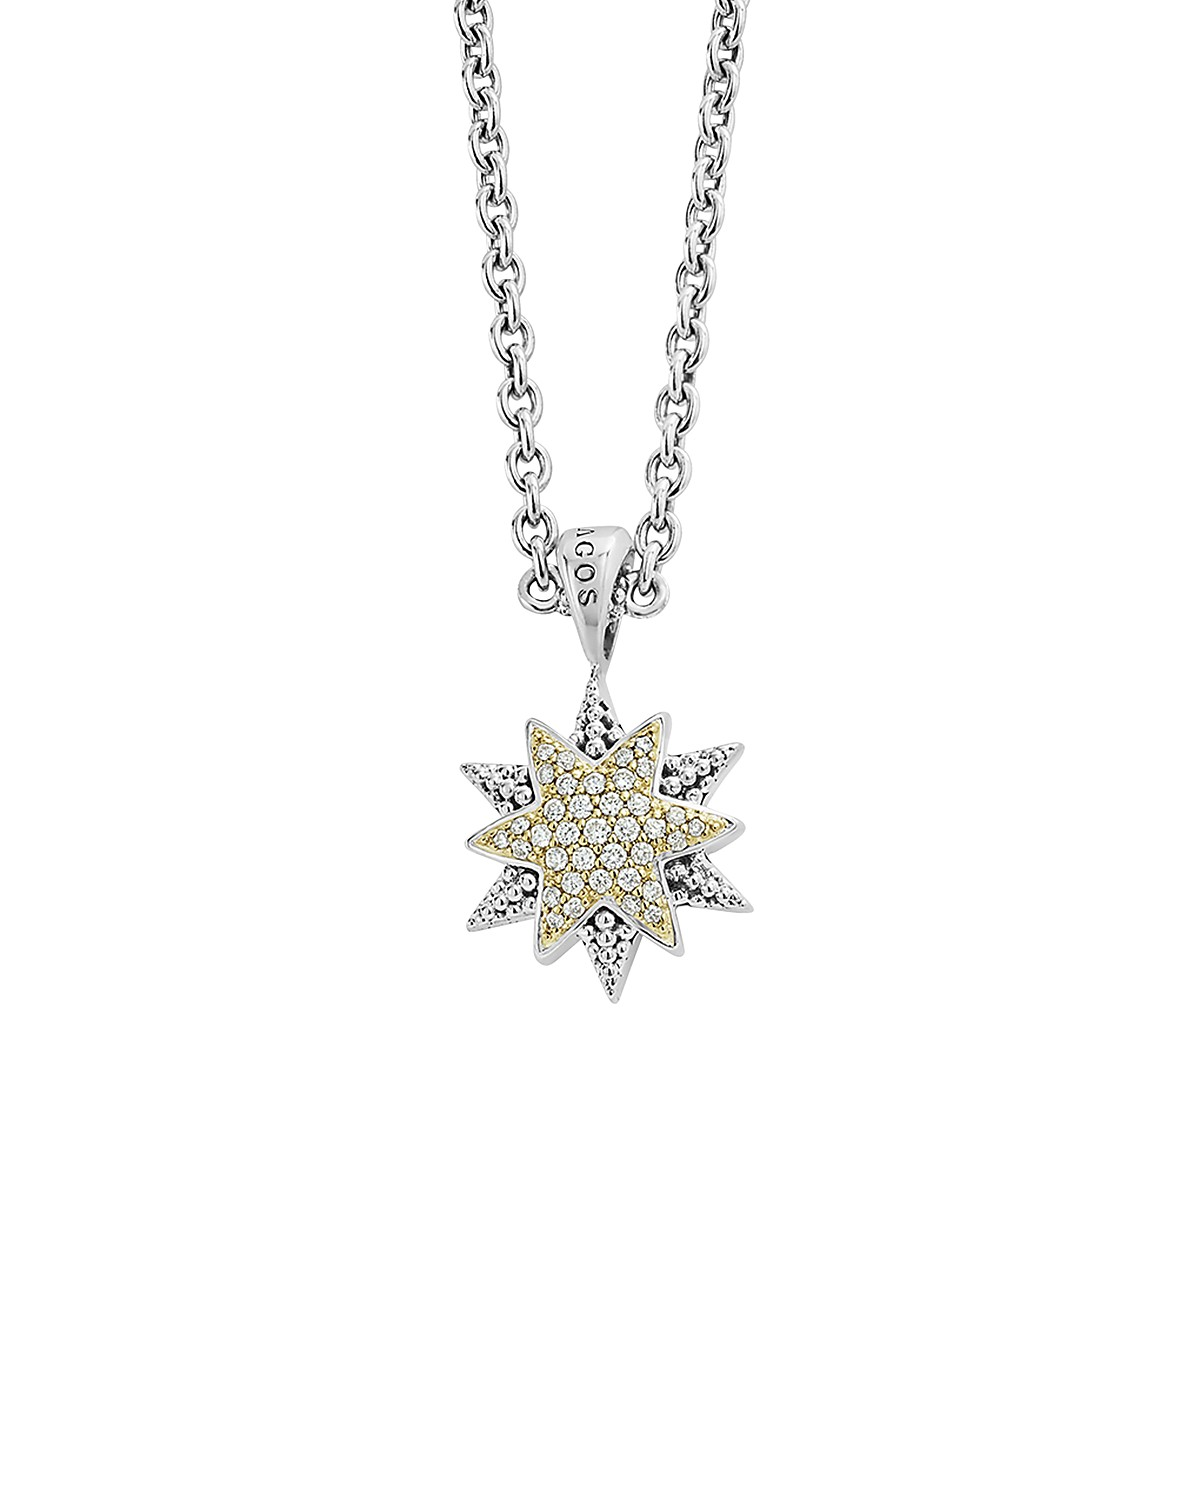 moonrise north jewelry necklace pendant star